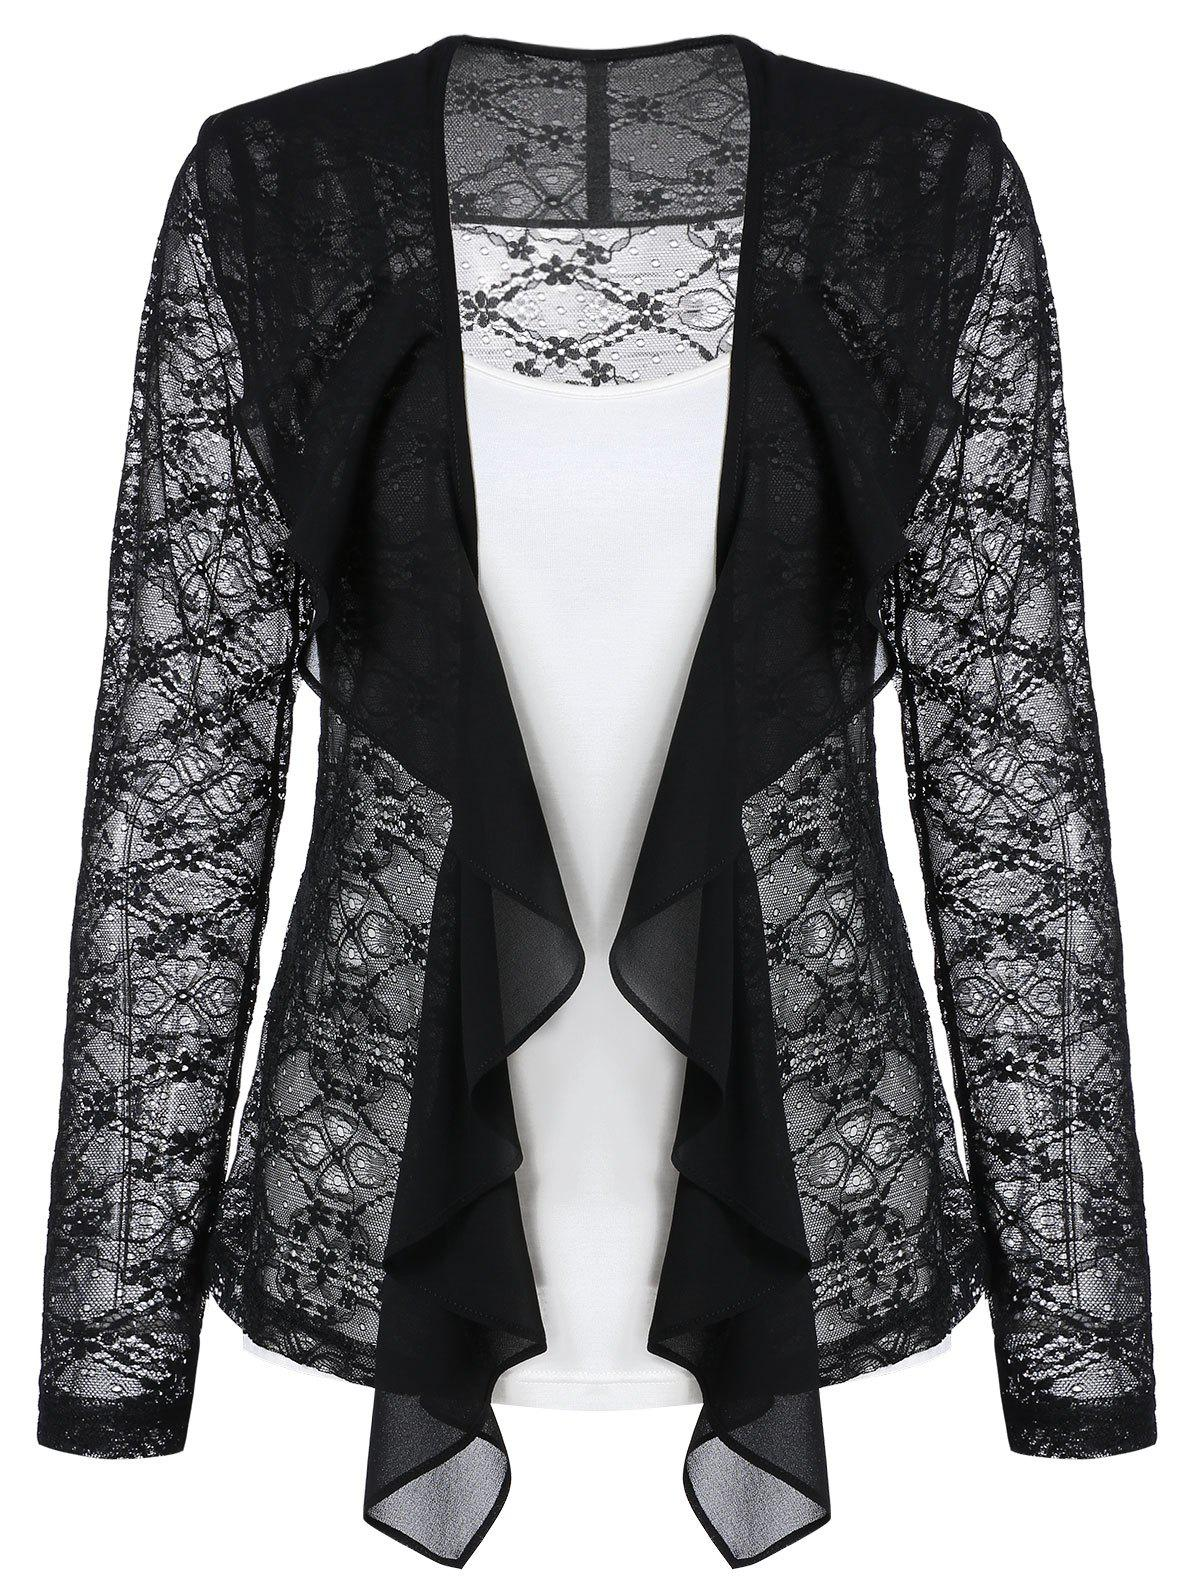 Fashion Lace Sheer Draped Cardigan and Cami Top Set